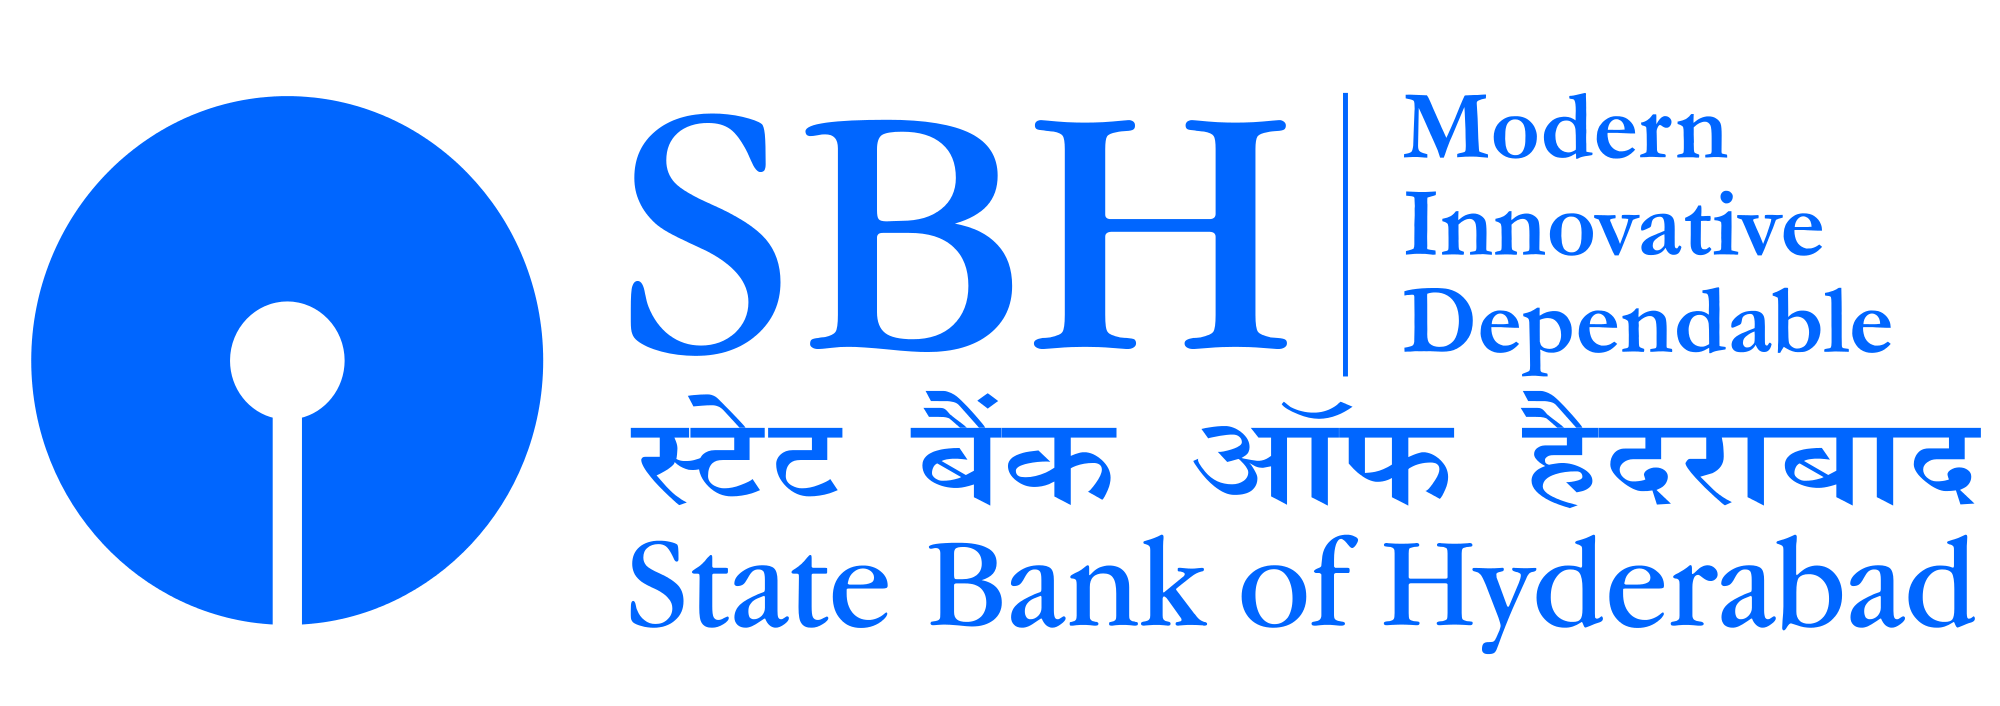 State Bank of Hyderabad